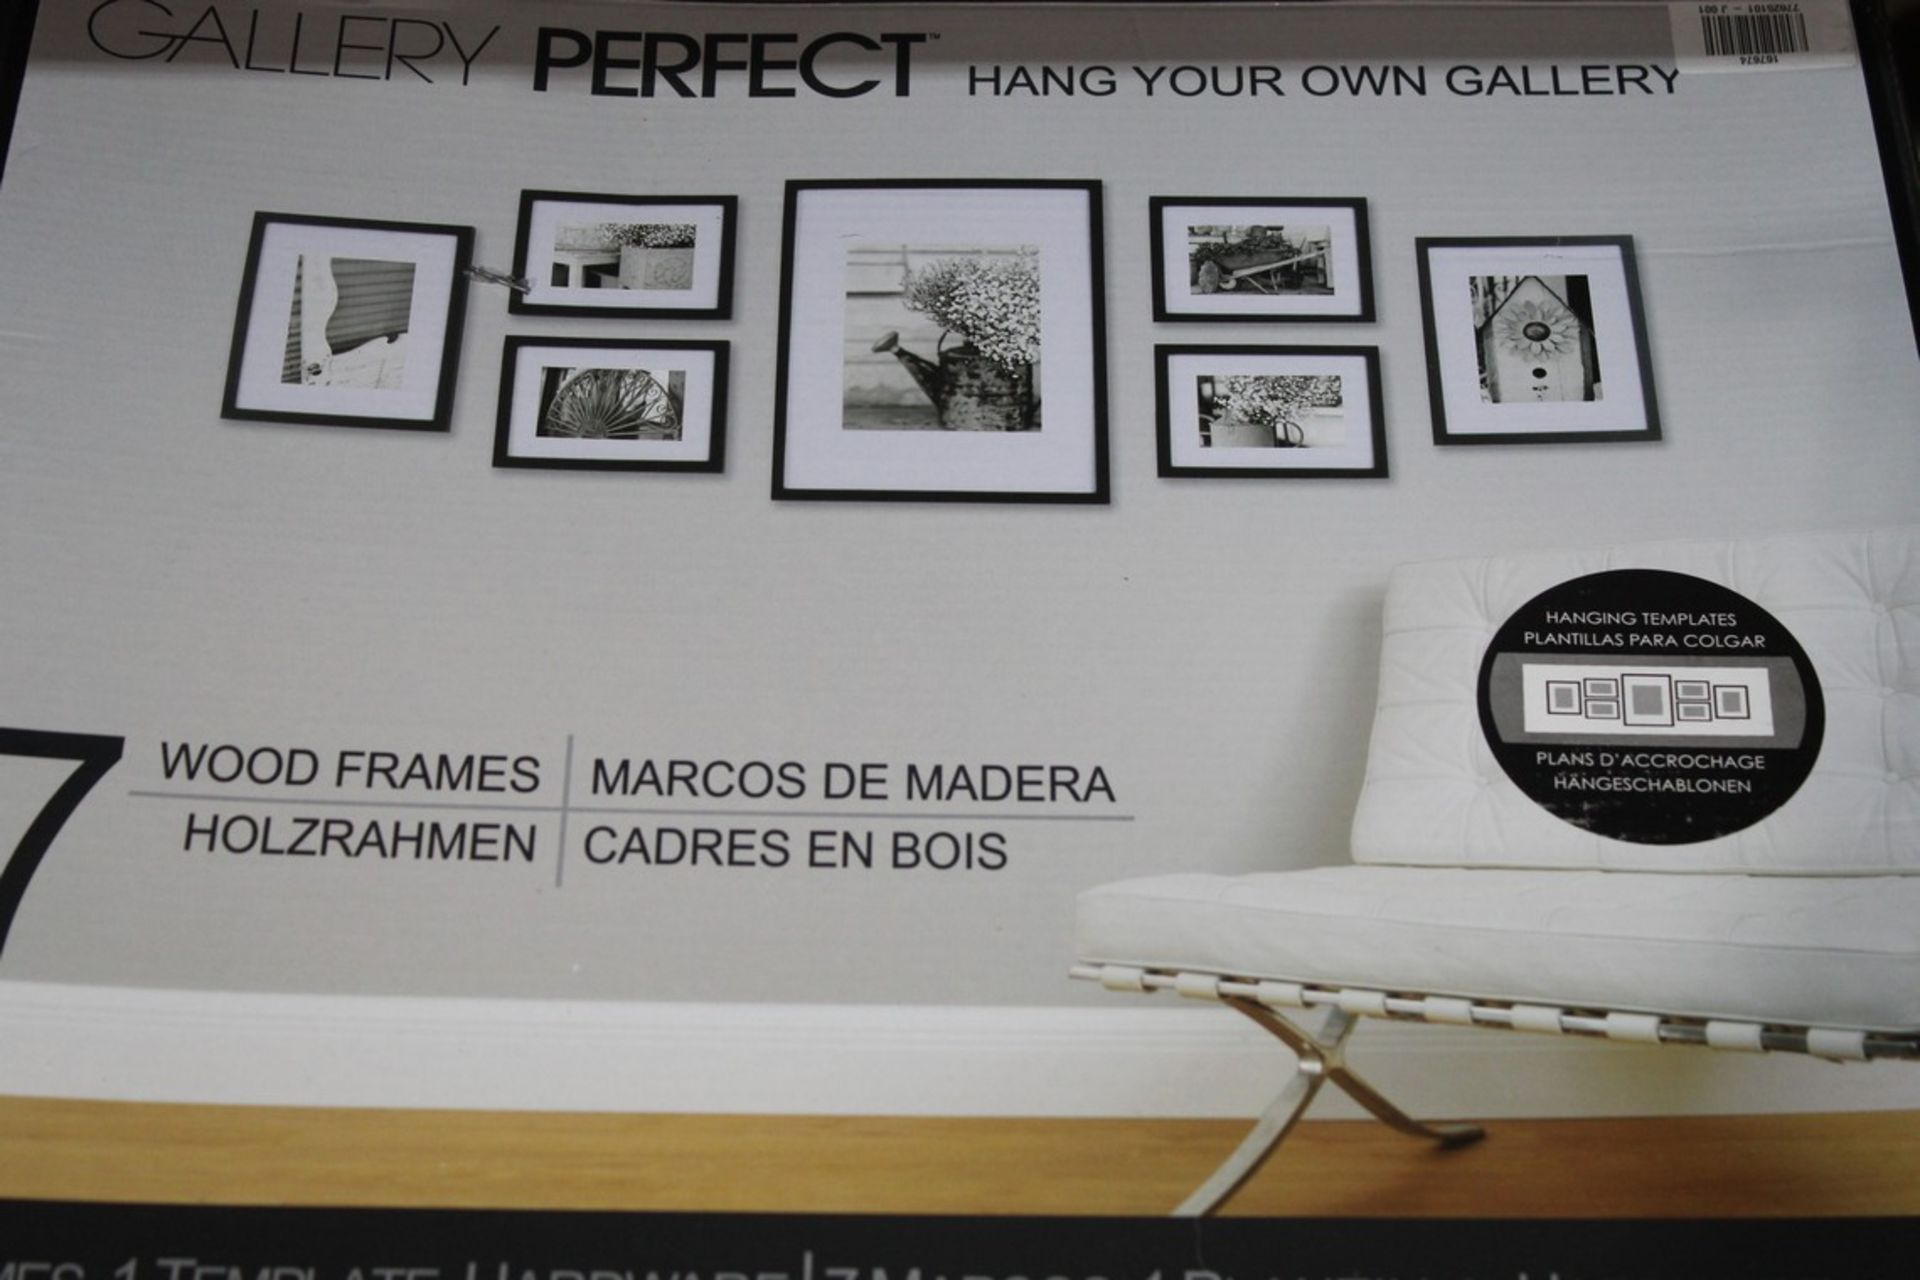 Lot 128 - Boxed Gallery Perfect Set of 7 Hang Your Own Picture Frames RRP £60 (167676) (44993467) (100005083)